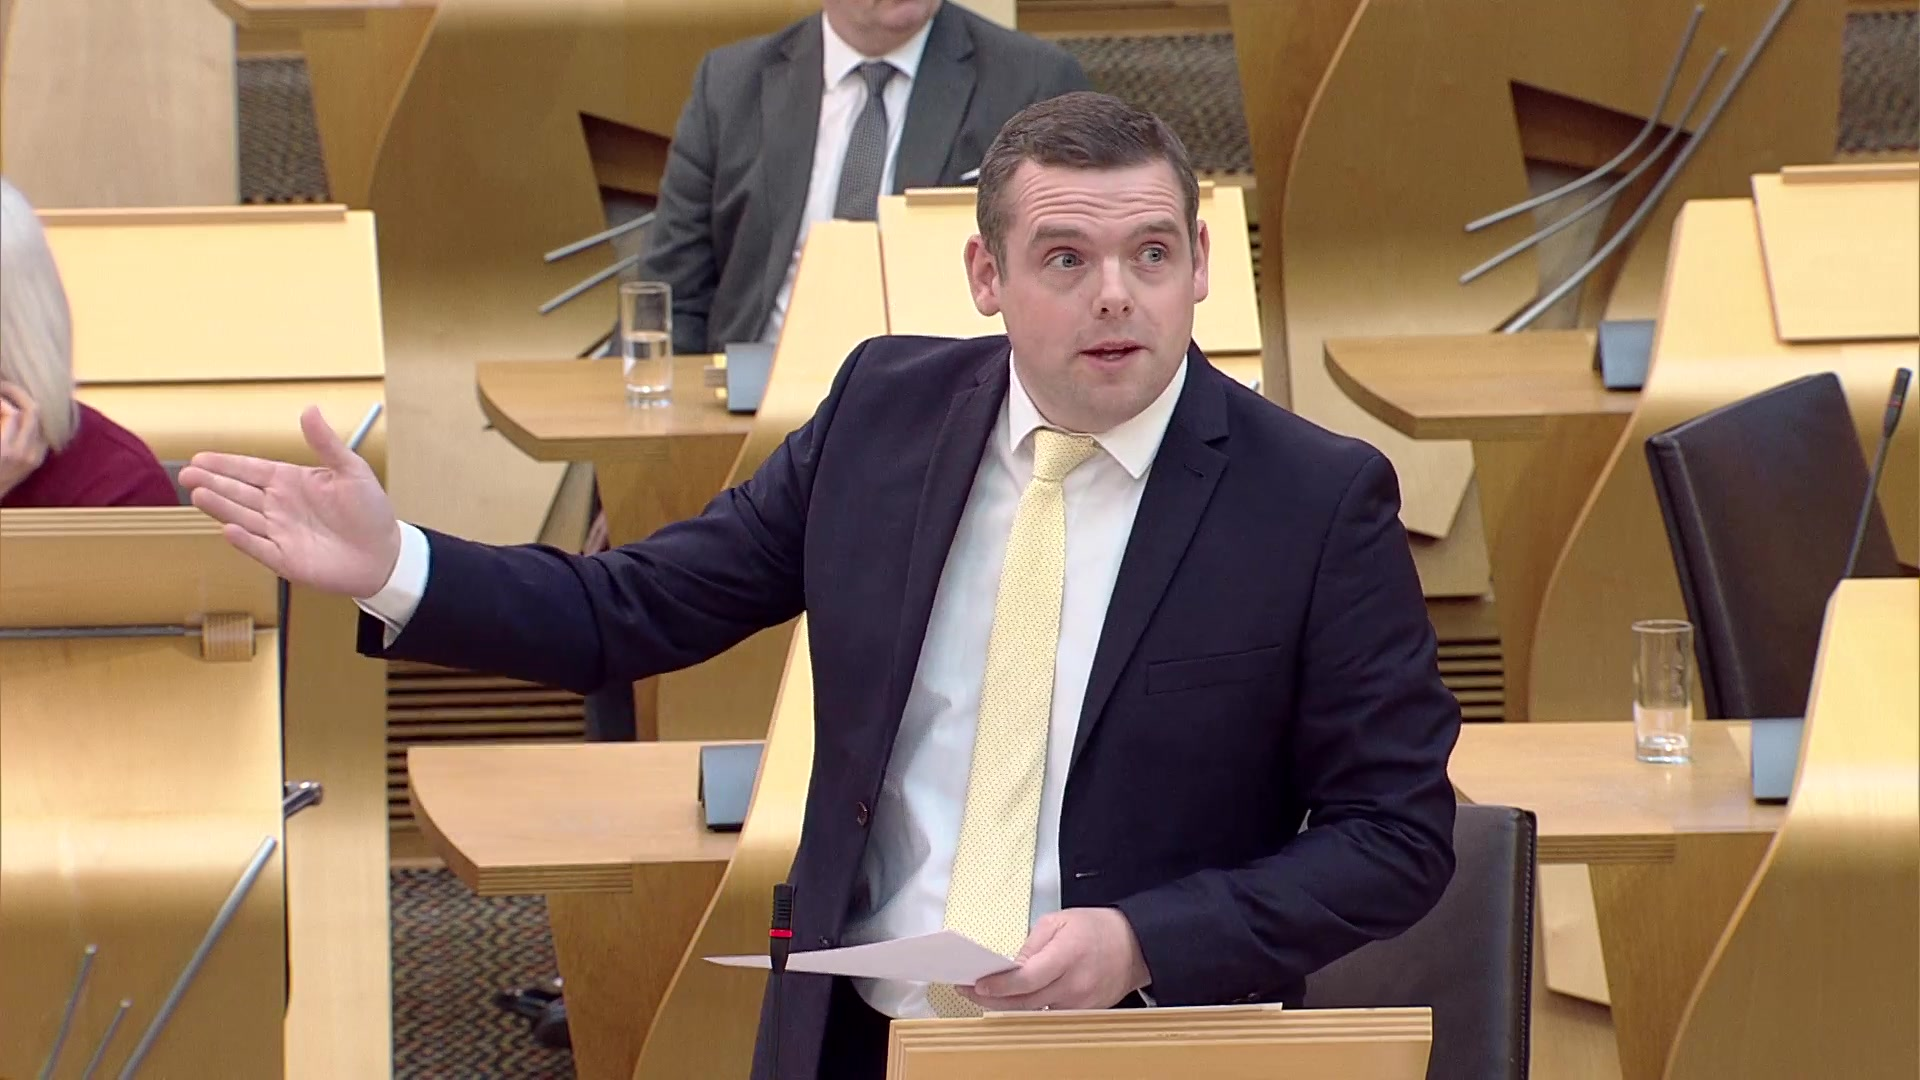 Scottish Conservative and Unionist Party Debate: Halting the COVID-19 Vaccine Certification Scheme